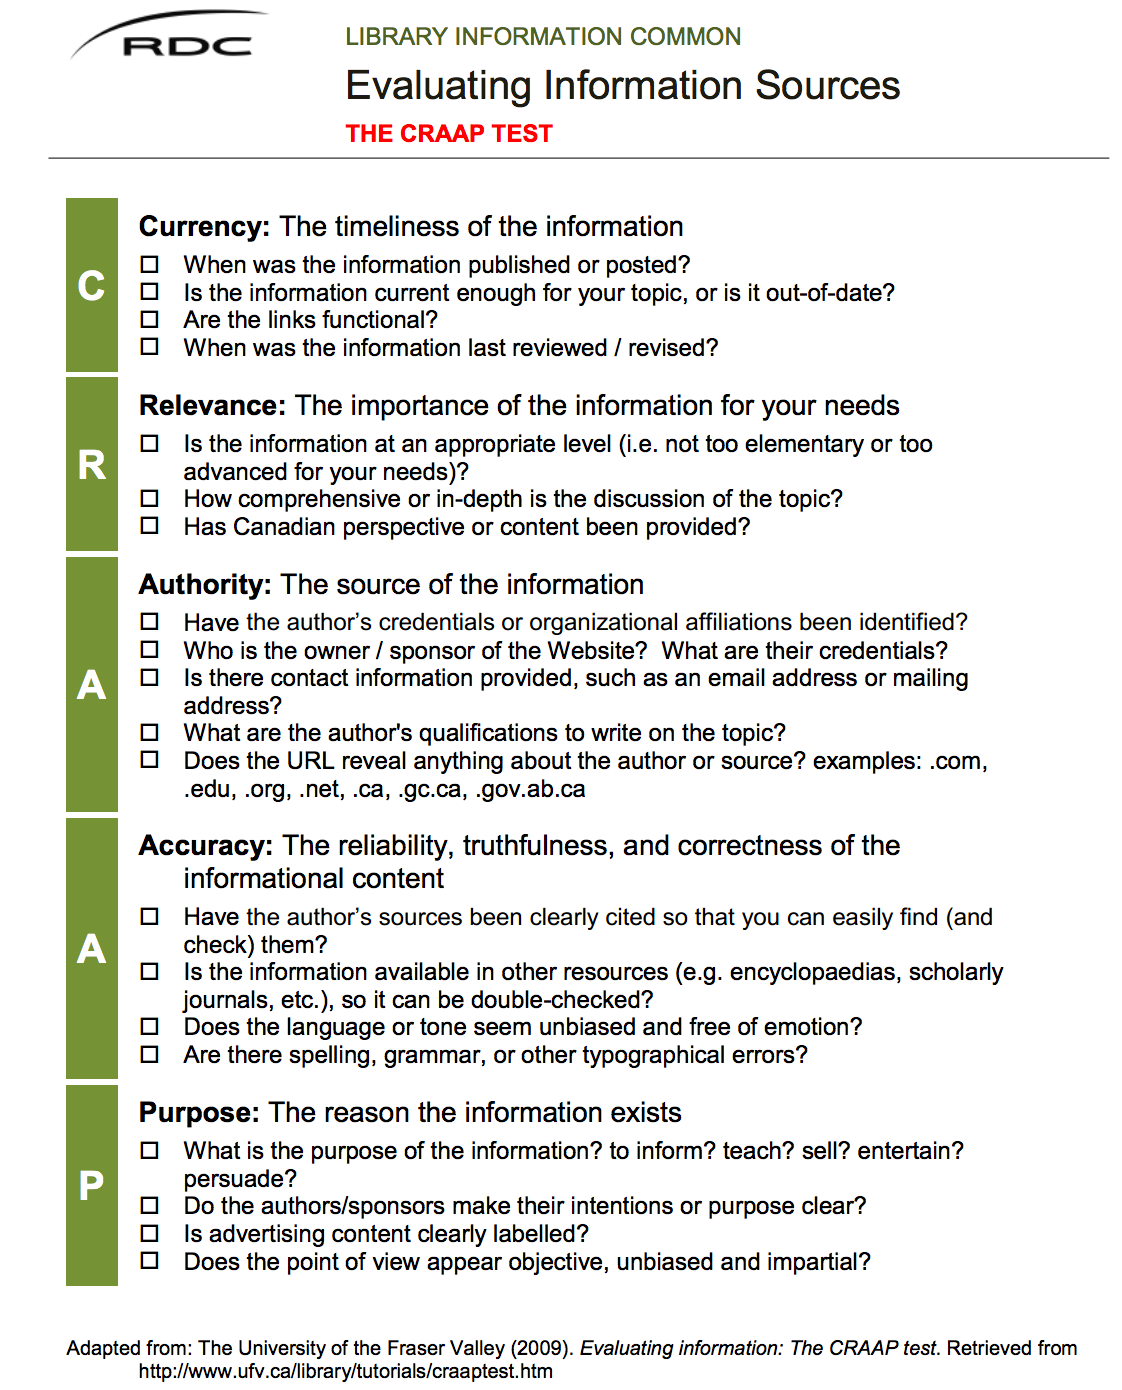 Excellent Checklist for Evaluating Information Sources | Technology